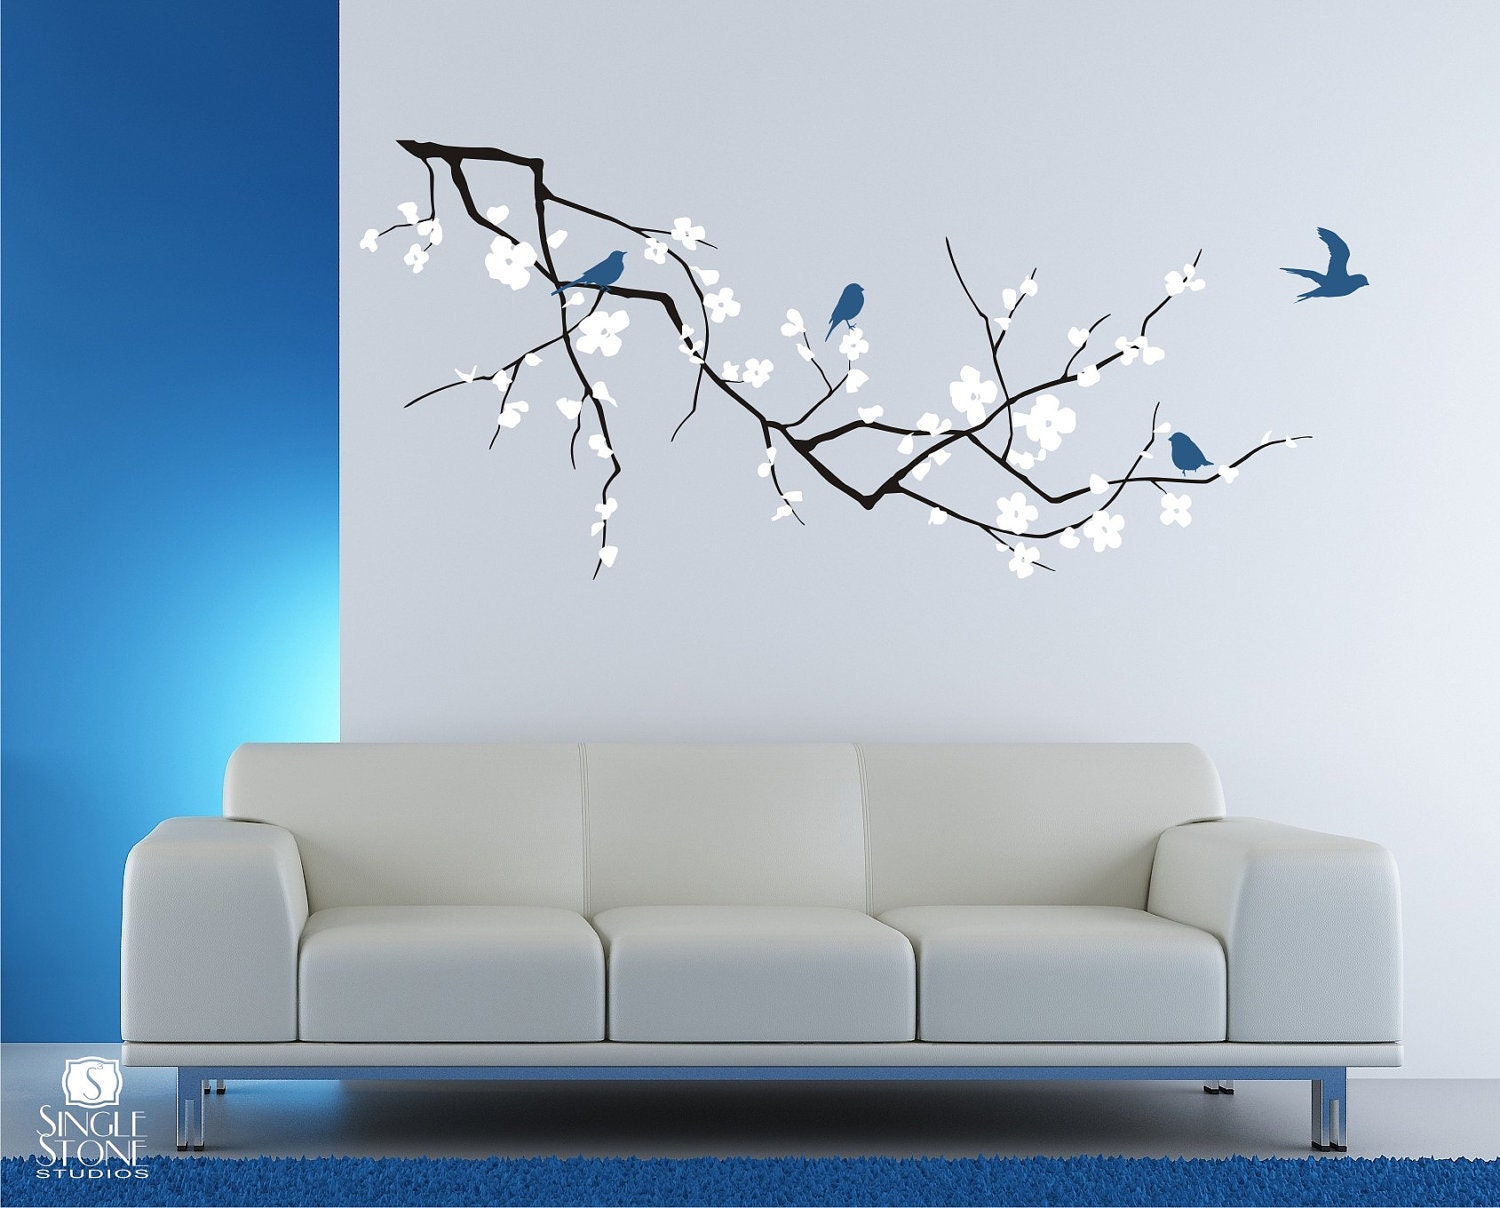 Wall Art Decals Cherry Blossom : Cherry blossom tree branch wall decal with birds vinyl